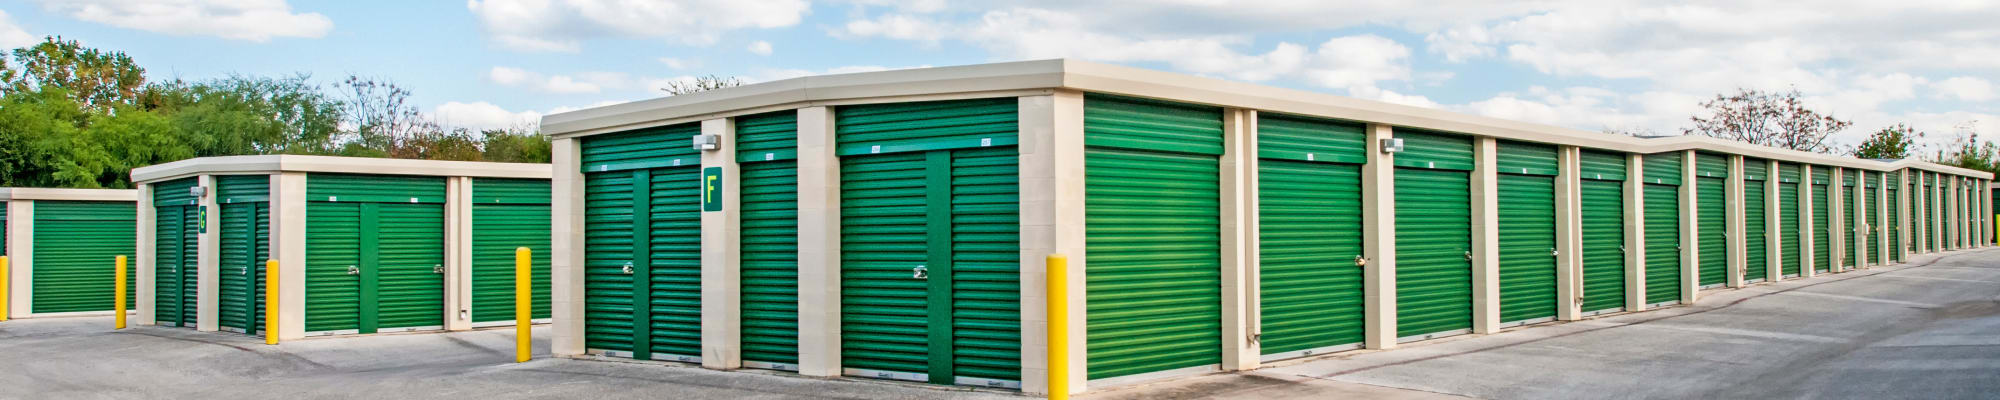 Hours and directions to Lockaway Storage in San Antonio, Texas